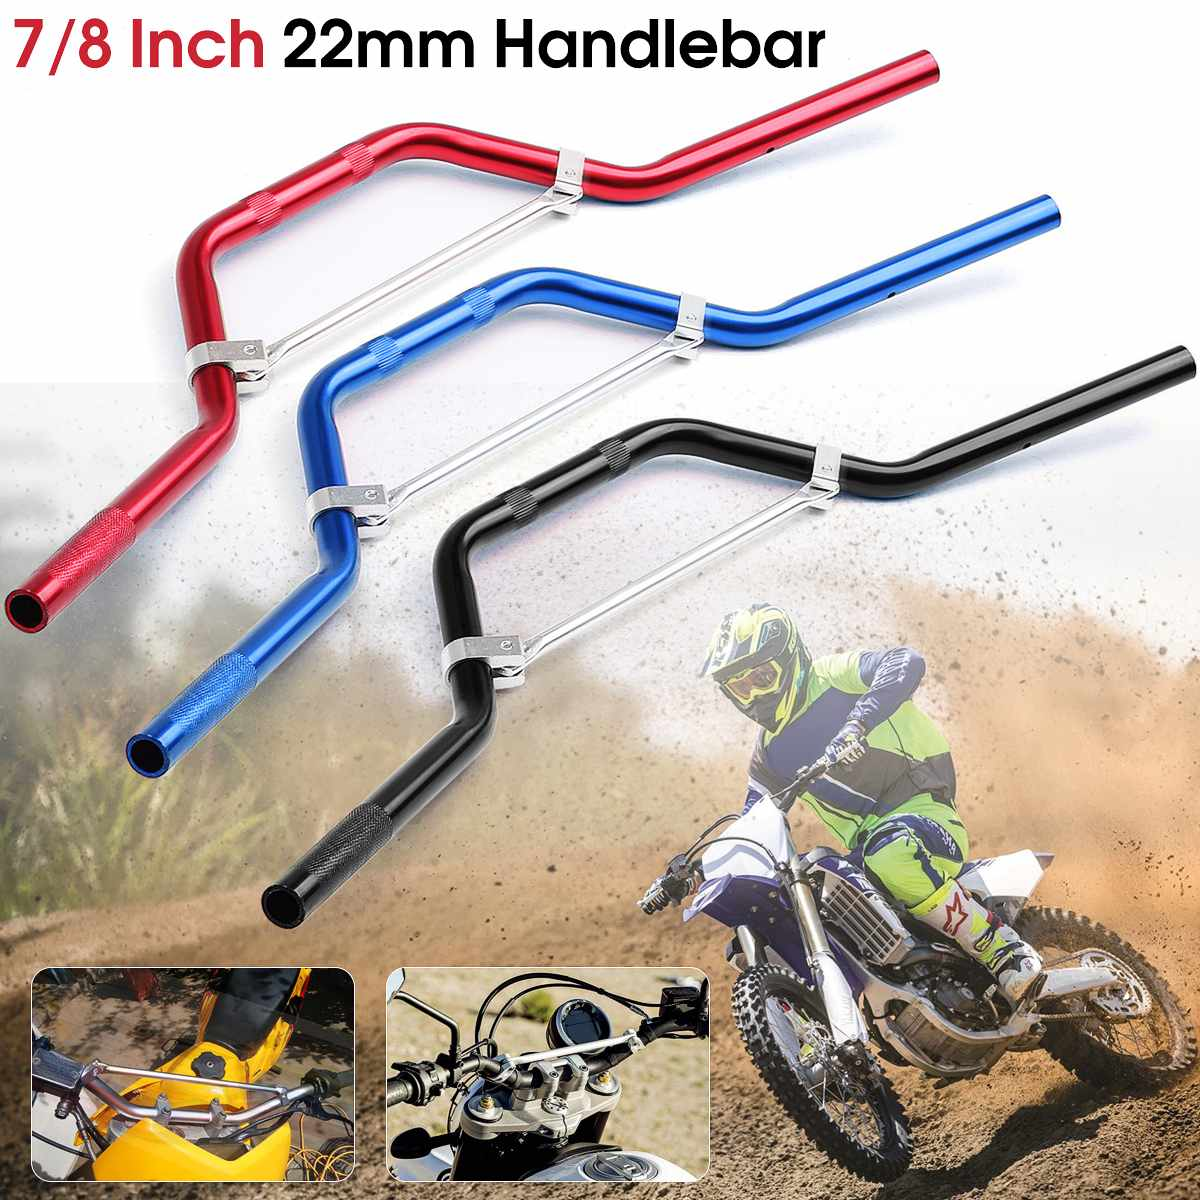 22mm 7/8'' Aluminum Motorcycle Braced Handlebar Handle Bars For Honda 50cc 70cc 110cc 125cc 140cc Dirt Pit Bike ATV Scooter